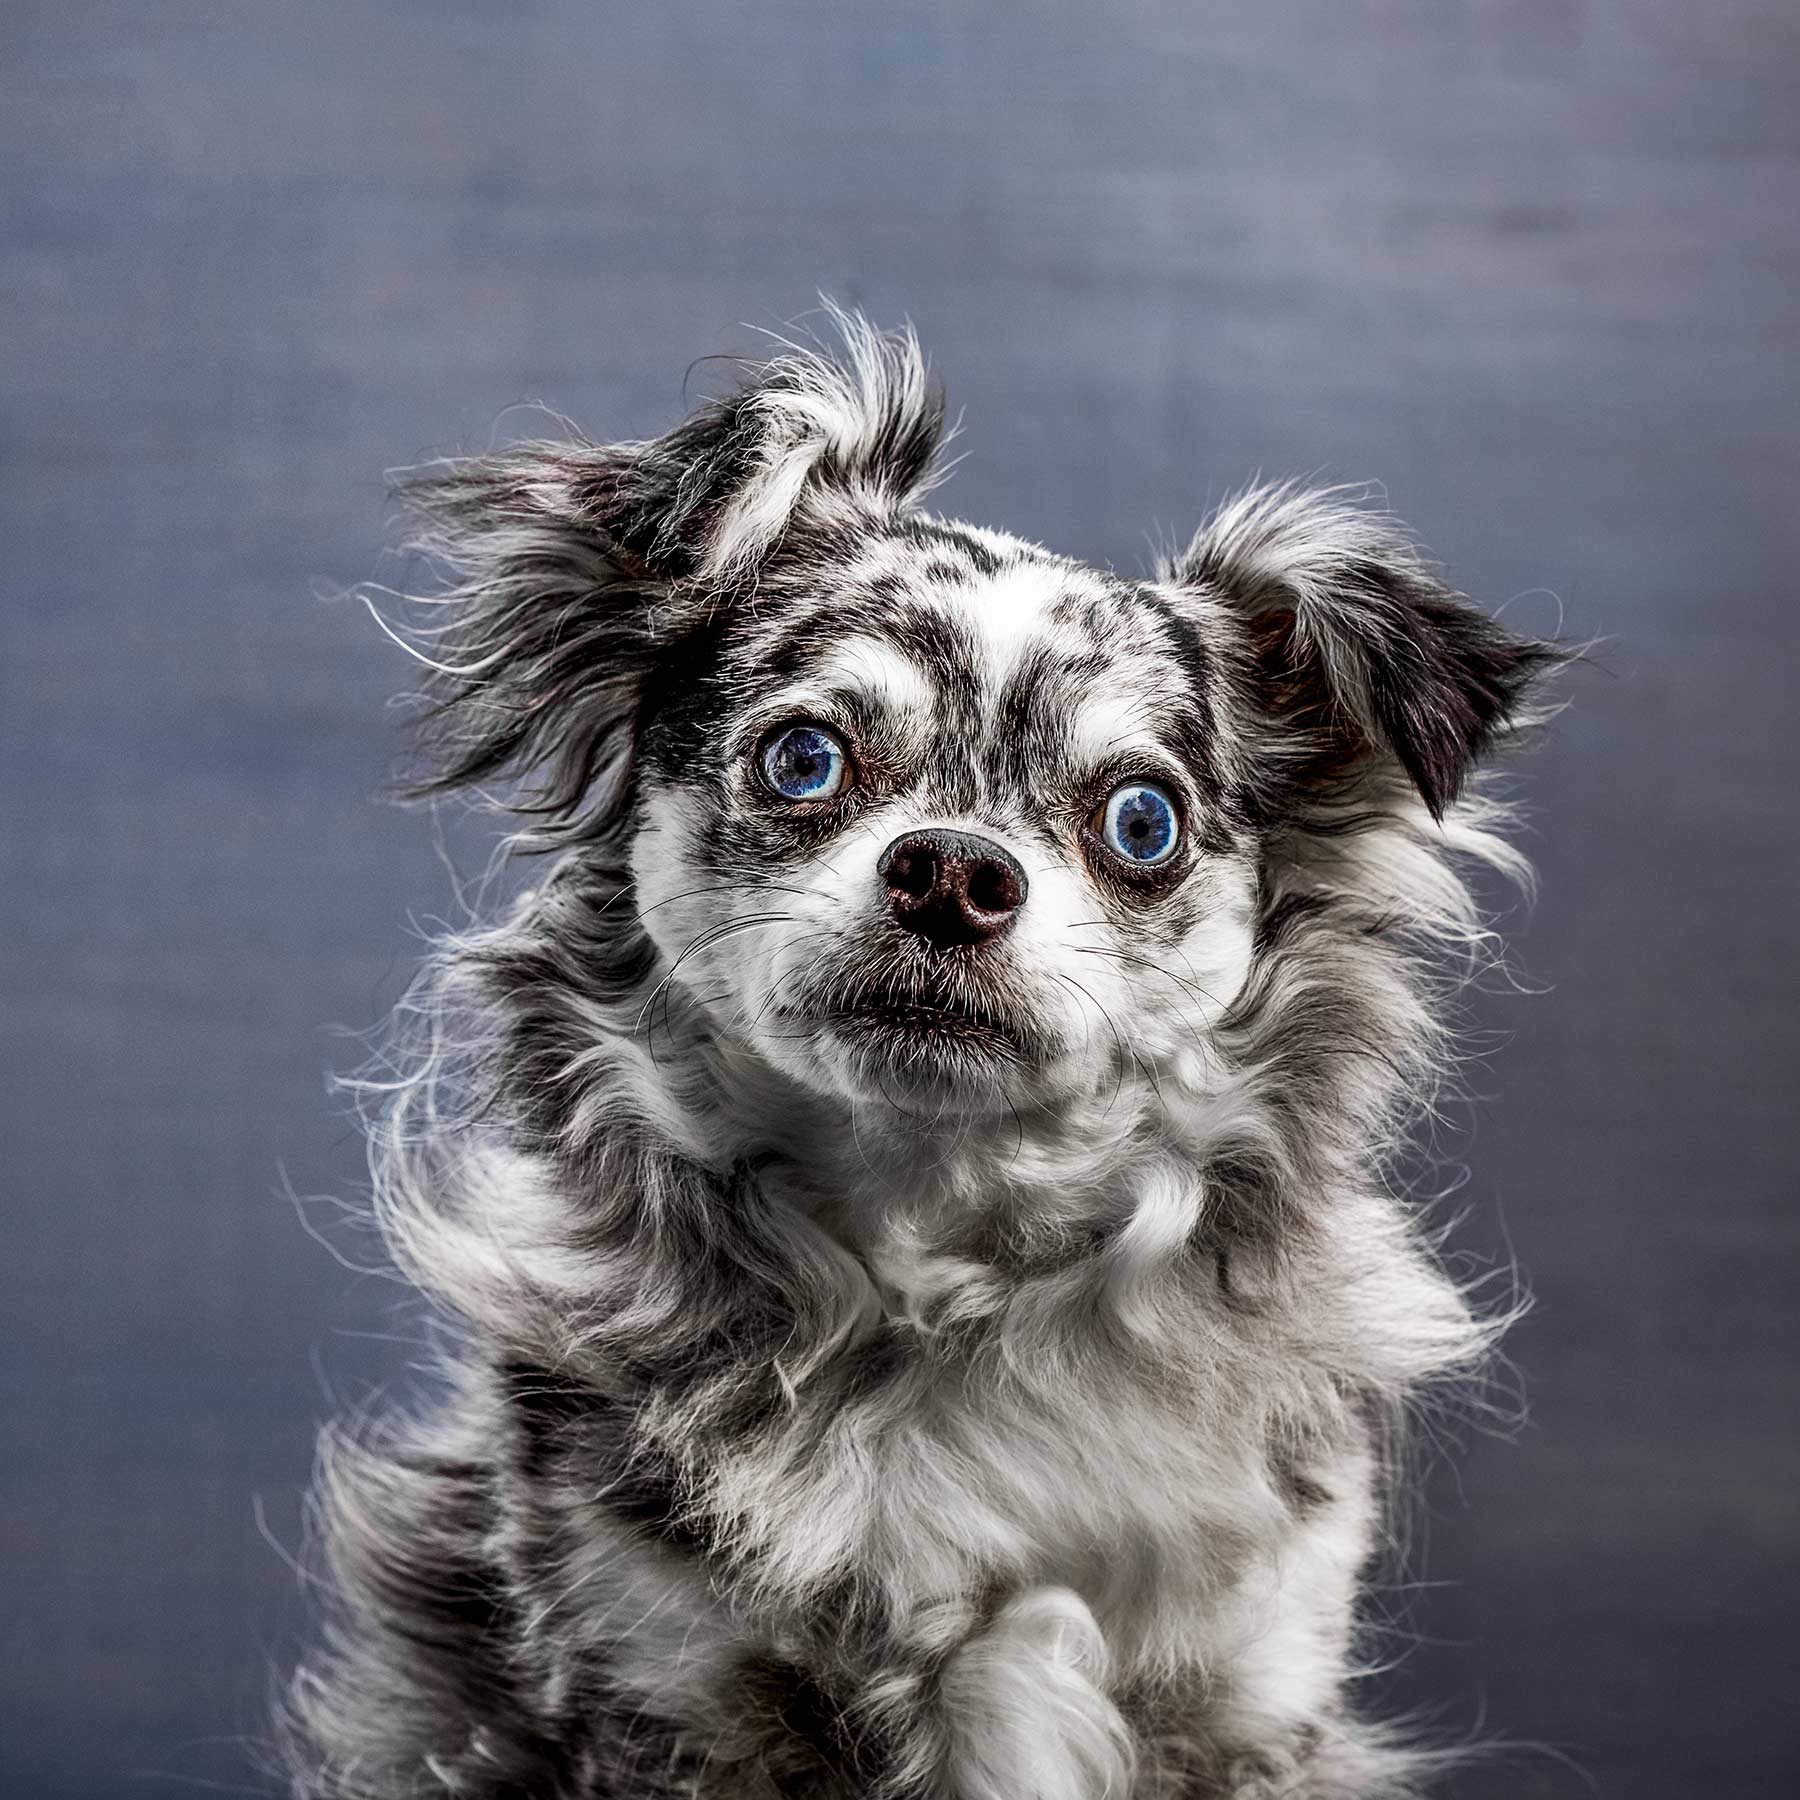 A-studio-portrait-of-a-black-and-white-dog-against-a-gray-background